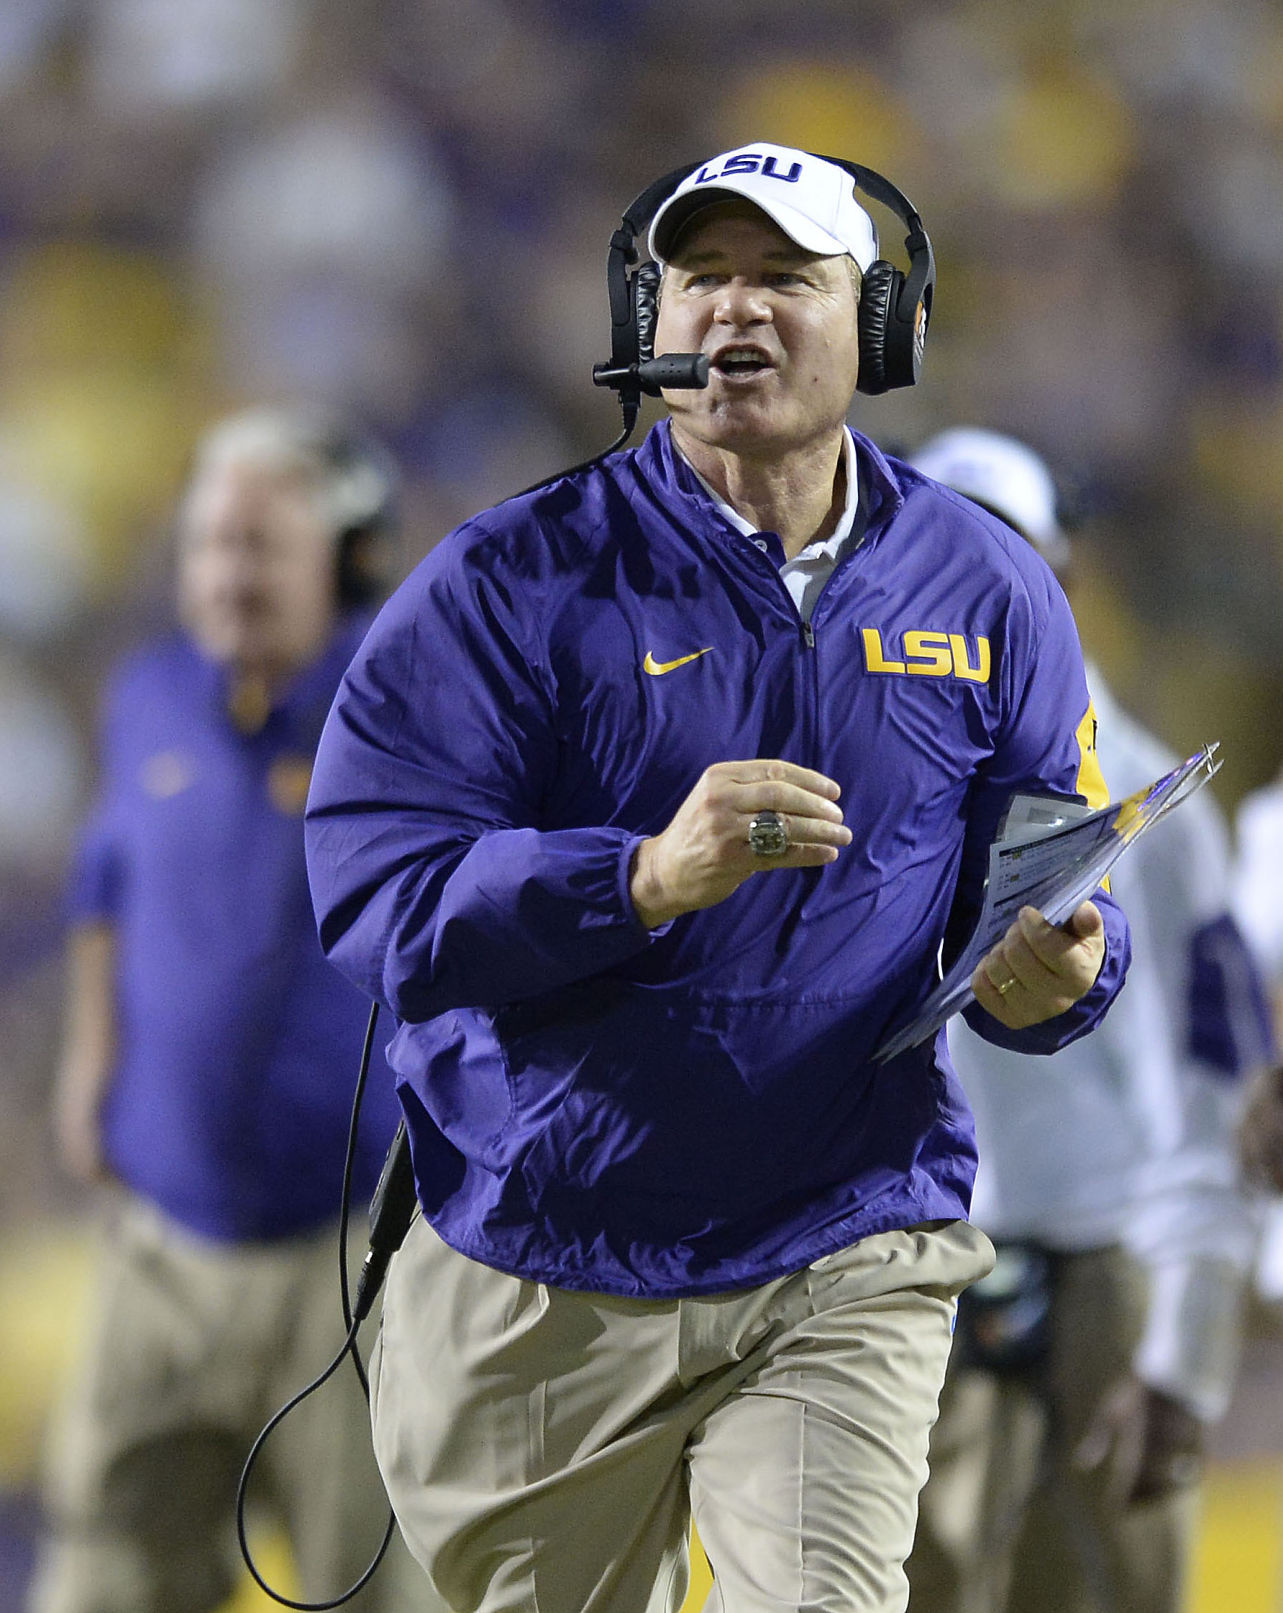 Fox Sports Announces Hires Of Les Miles, Mark Helfrich, Danny Kanell